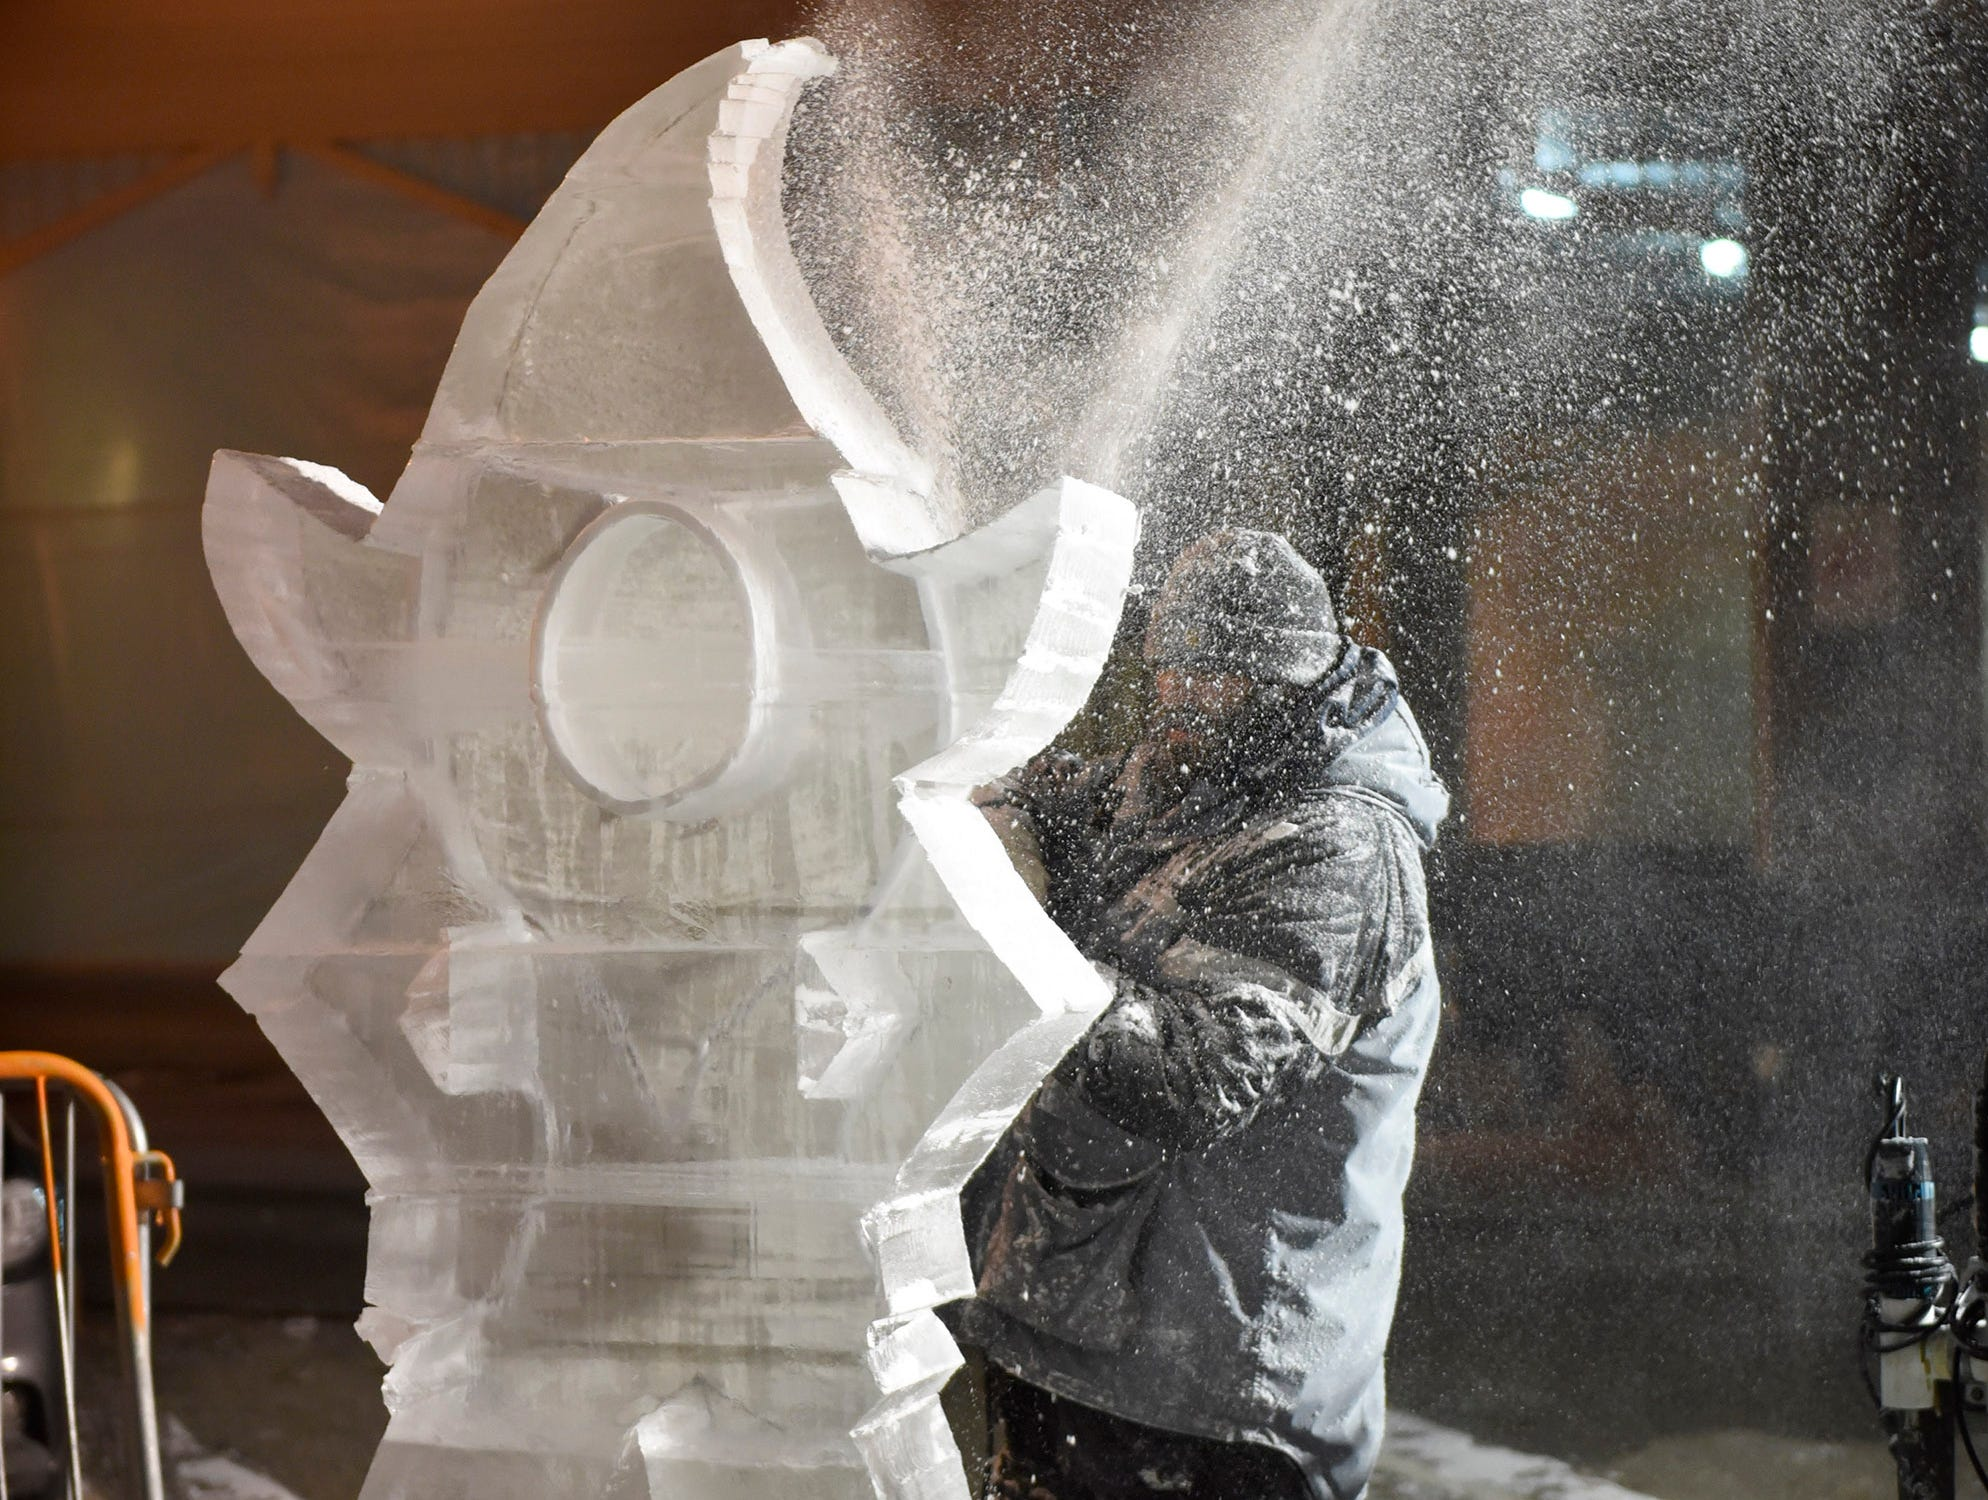 Jeff Meyers works on a carving Wednesday evening preparing for the Plymouth Ice Festival that runs Jan. 11-13.